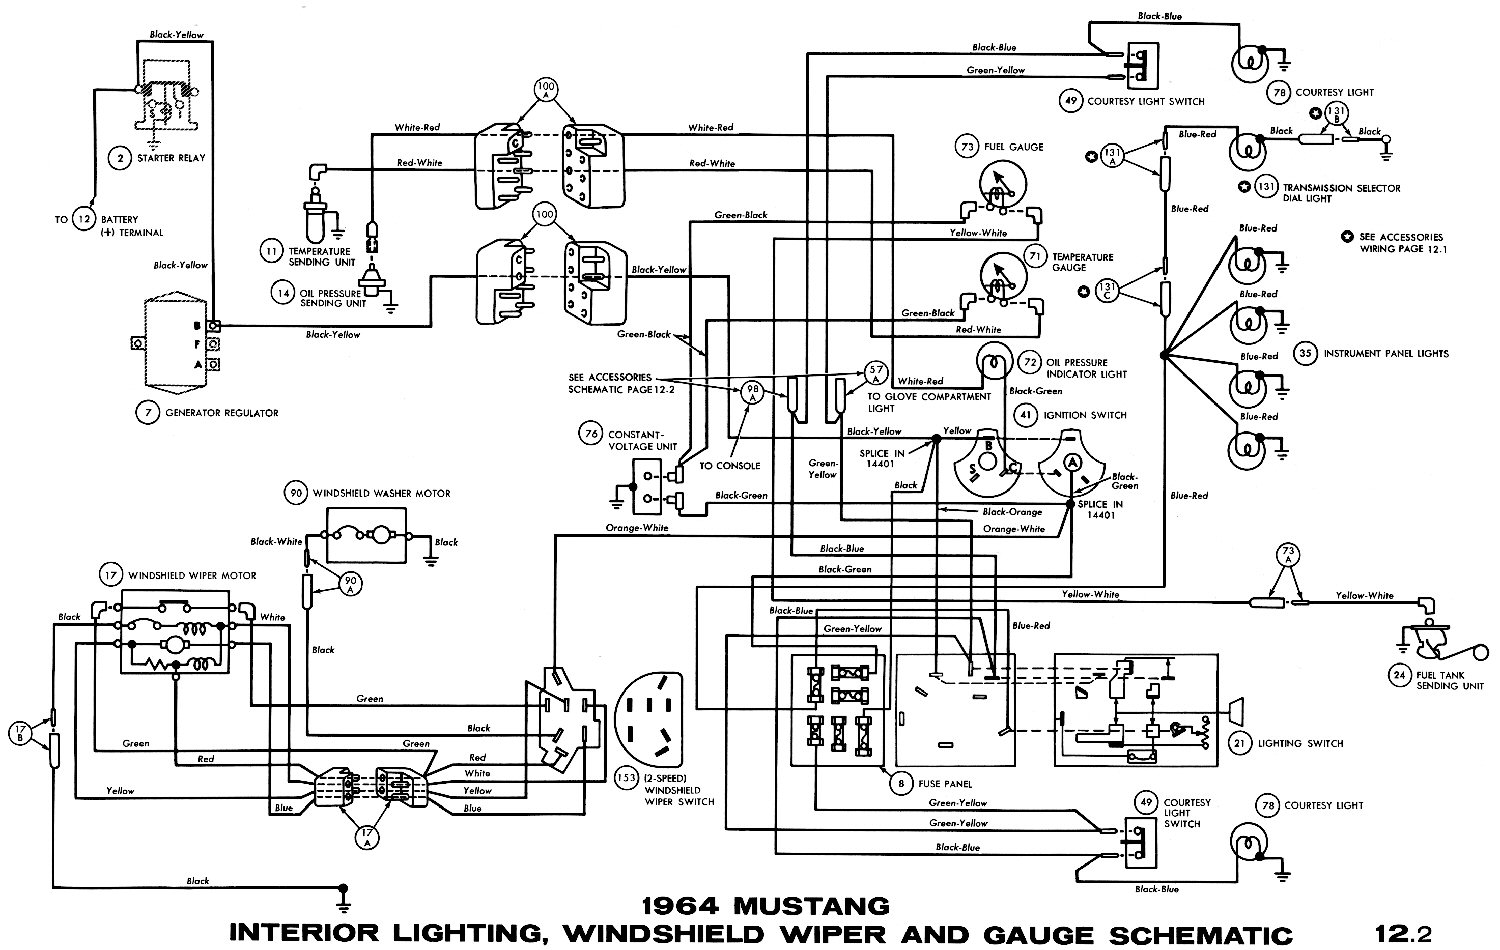 1964k mustang wiring diagrams mustang engine diagram \u2022 free wiring 1969 Mustang Wiring Diagram PDF at suagrazia.org